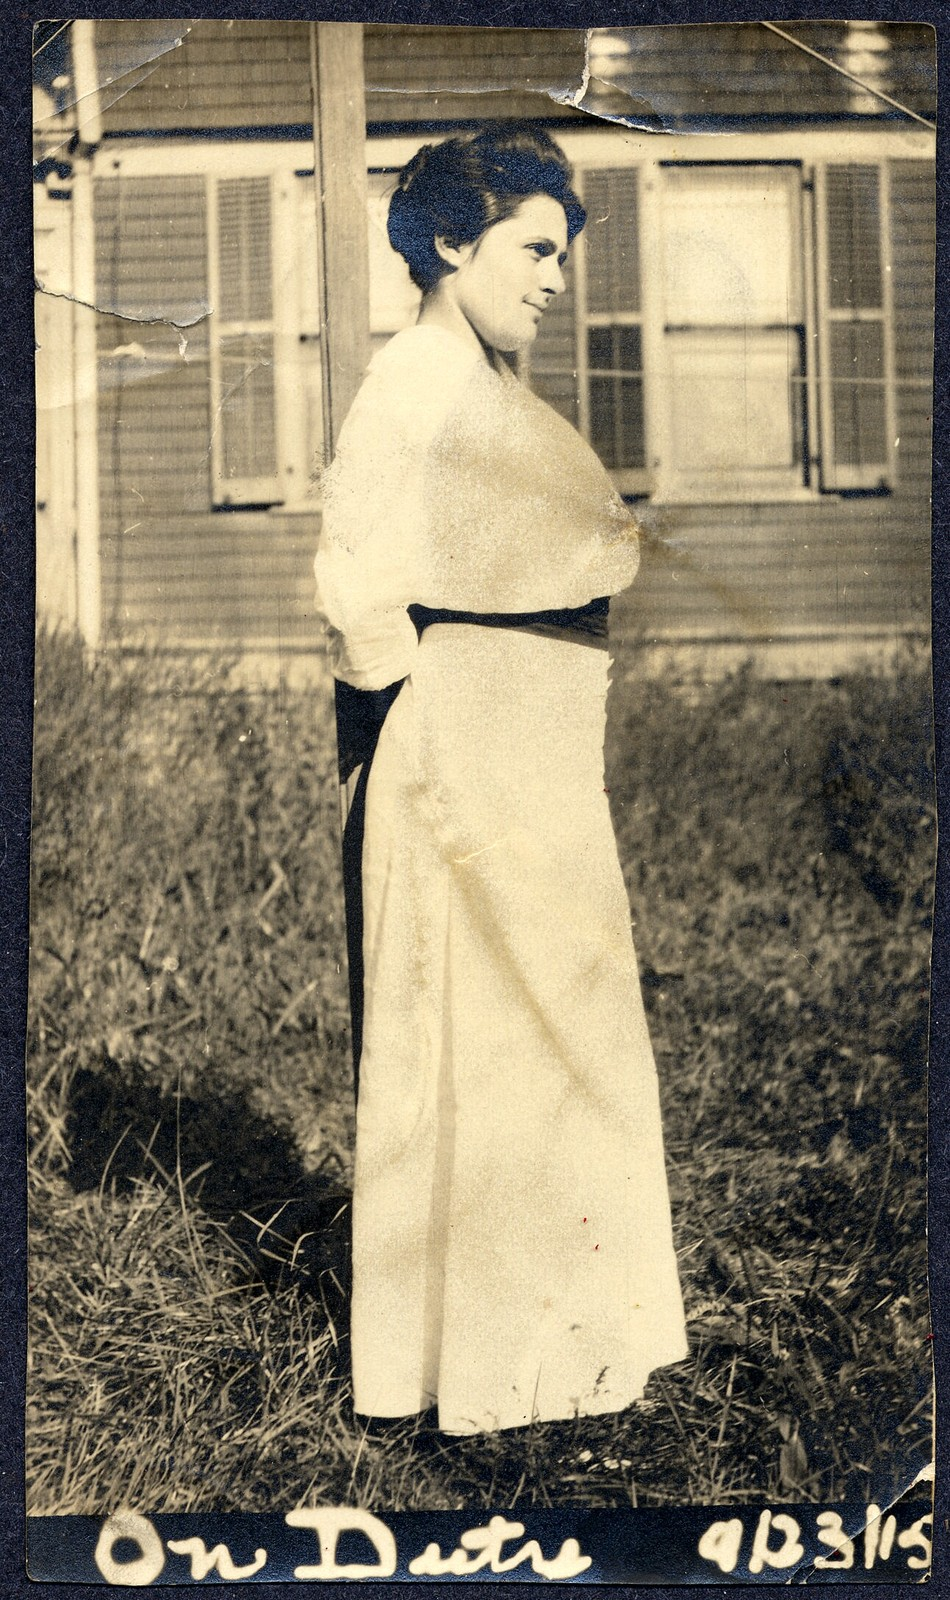 [ Bessie Fine standing next to a post in front of a house, 9/23/15]